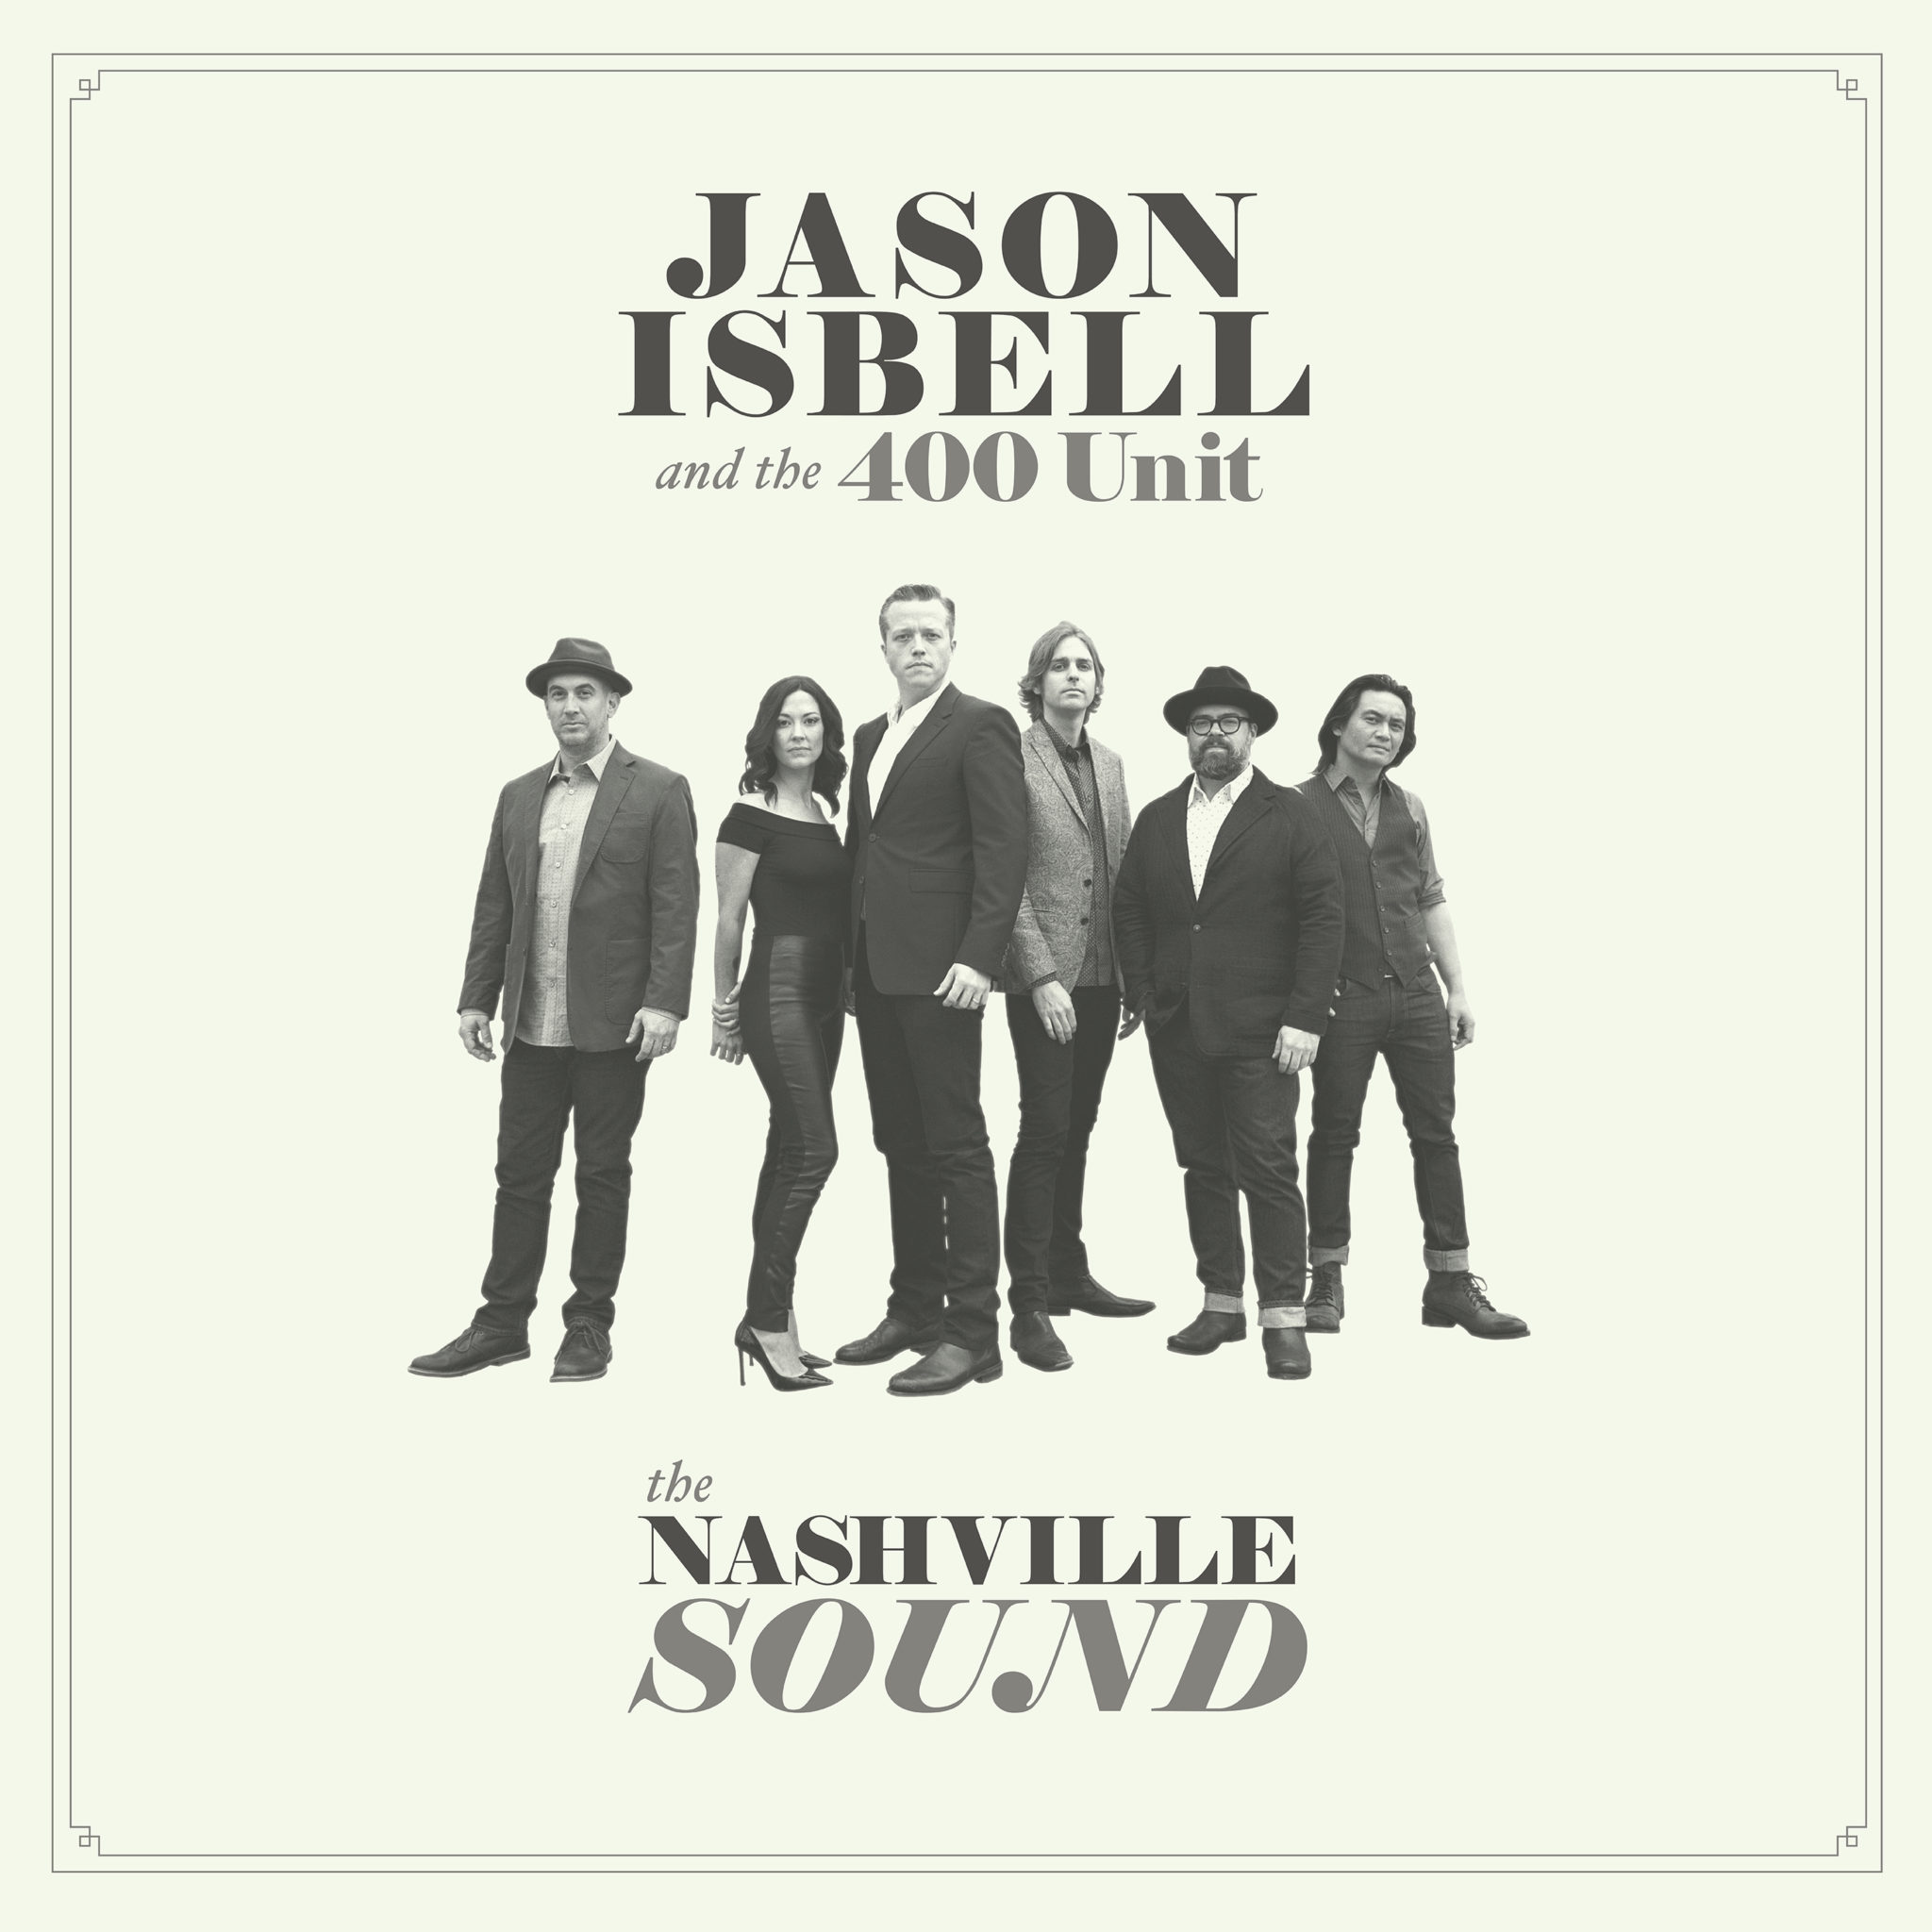 Jason Isbell and the 400 Unit The Nashville Sound